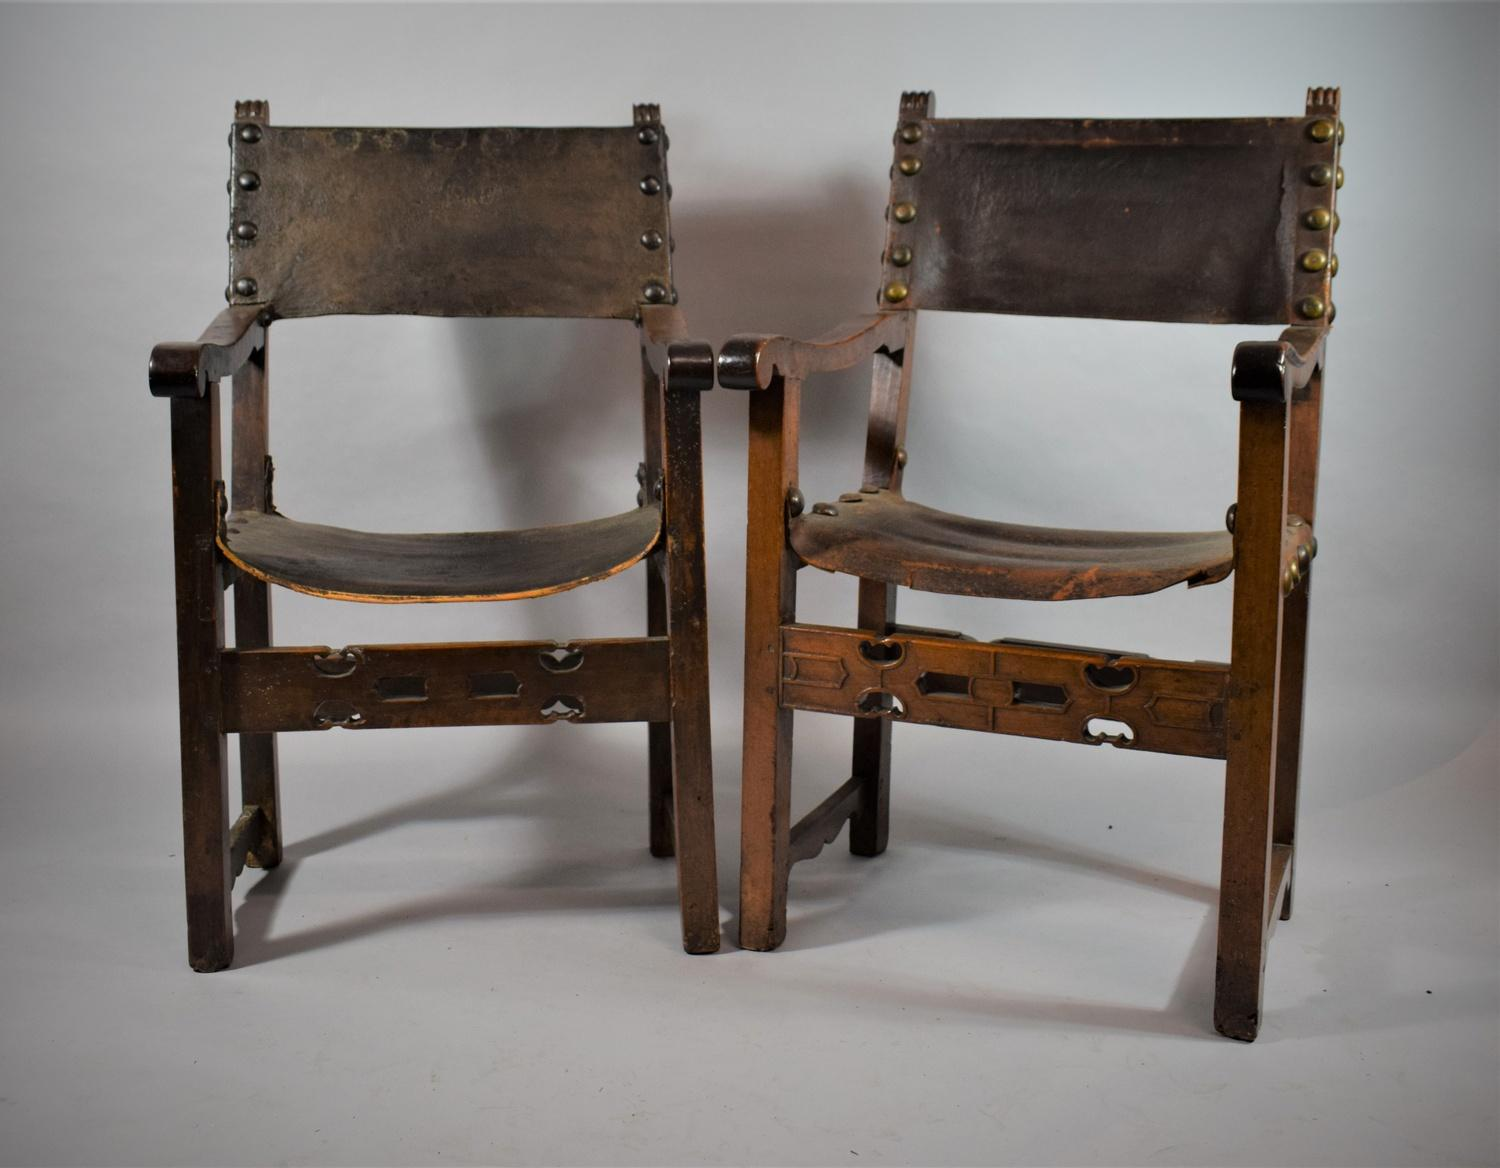 Lot 24 - A Near Pair of 18th Century Spanish Armchairs with Pierced Front Rails, Leather Sling Backs and